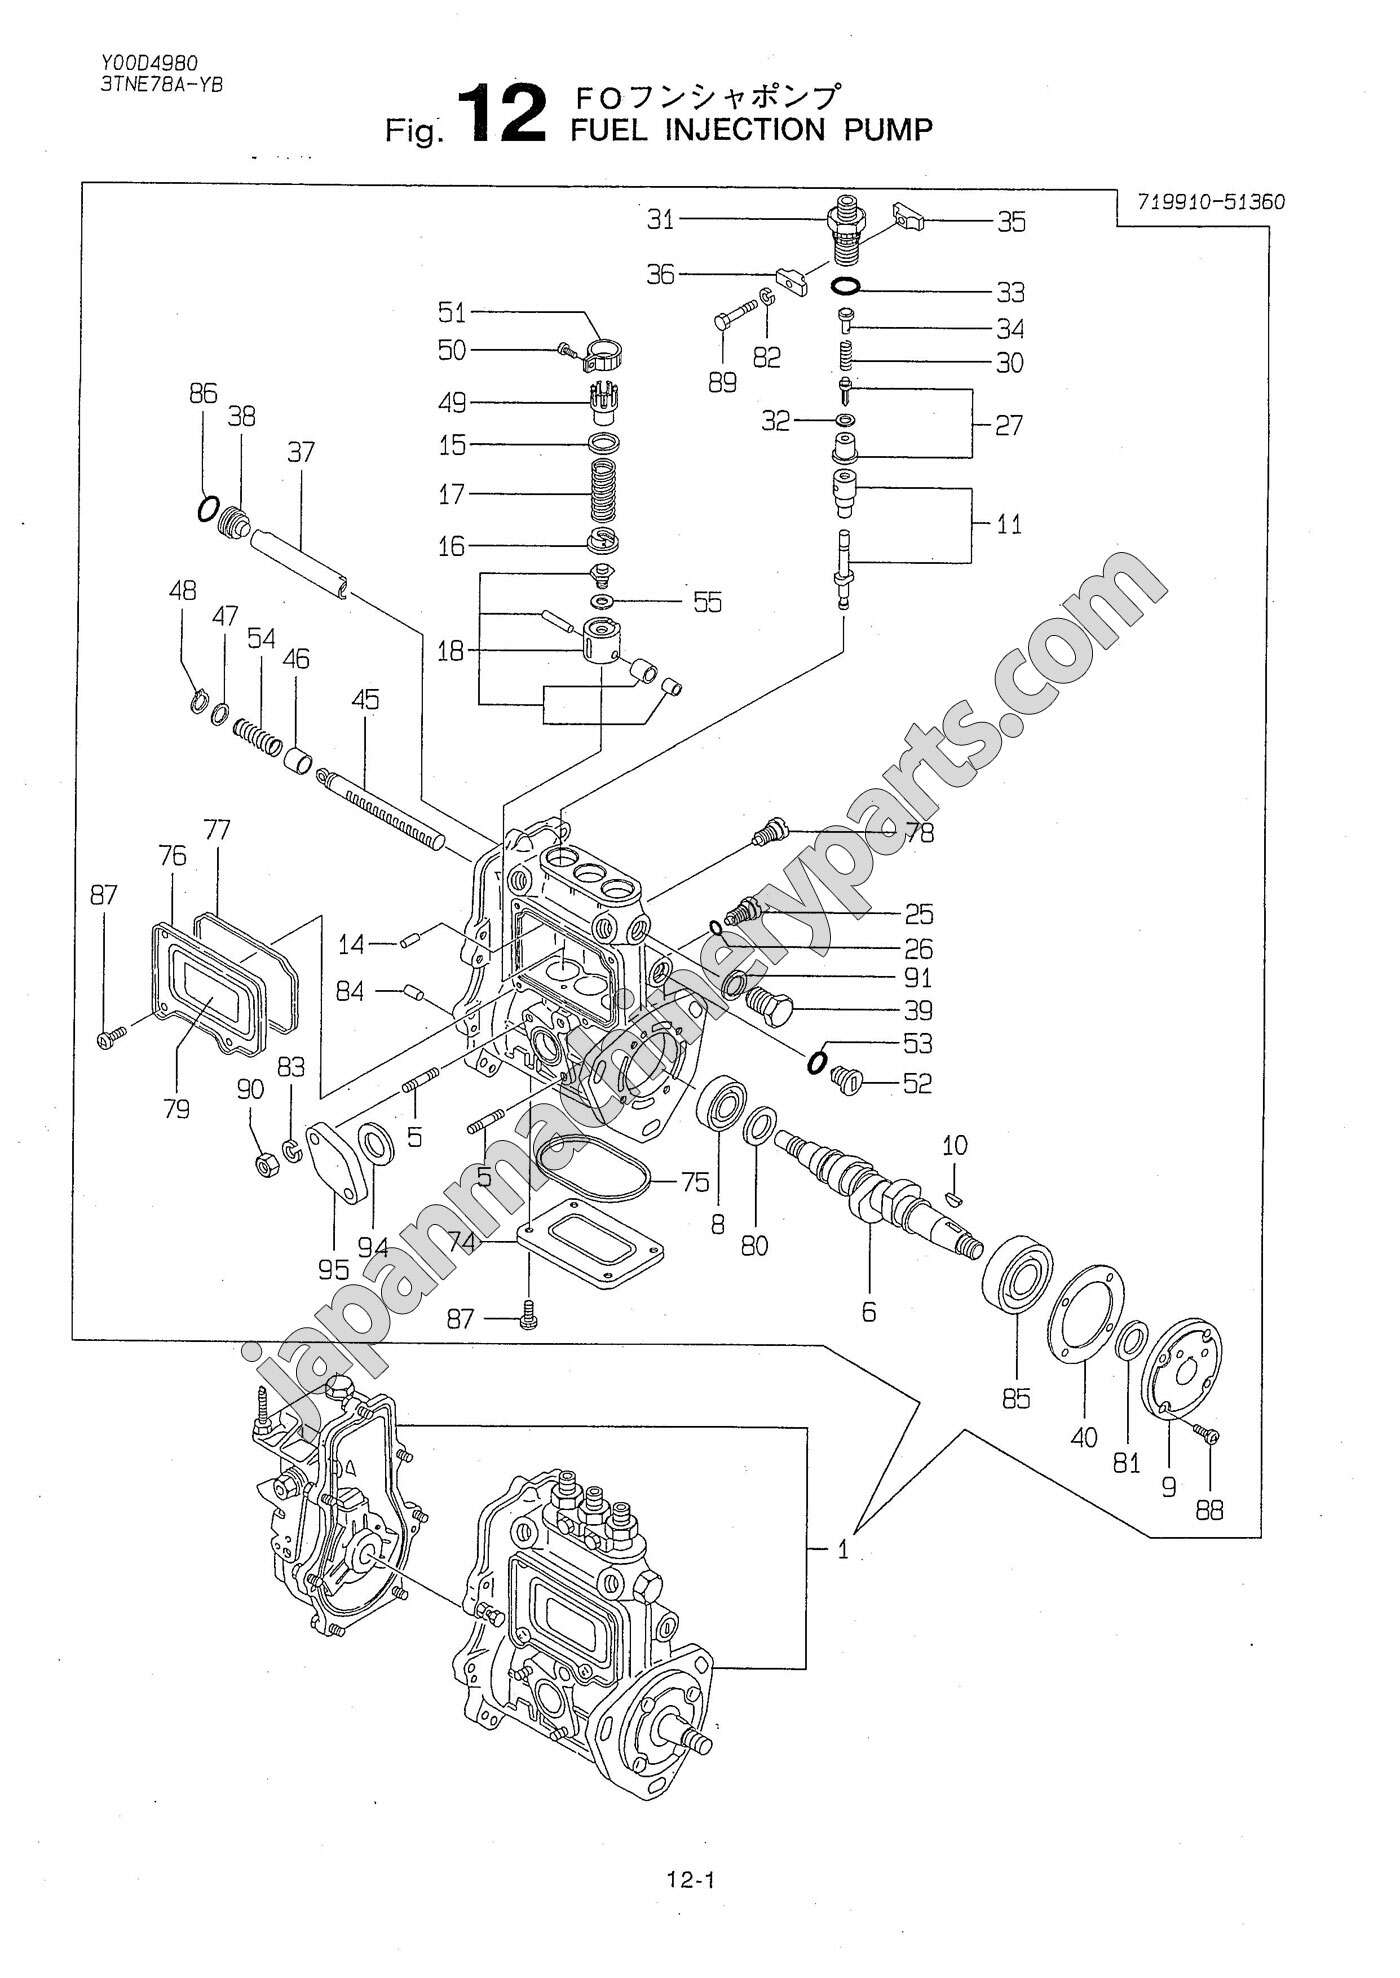 vp44 pump wiring harness diagram